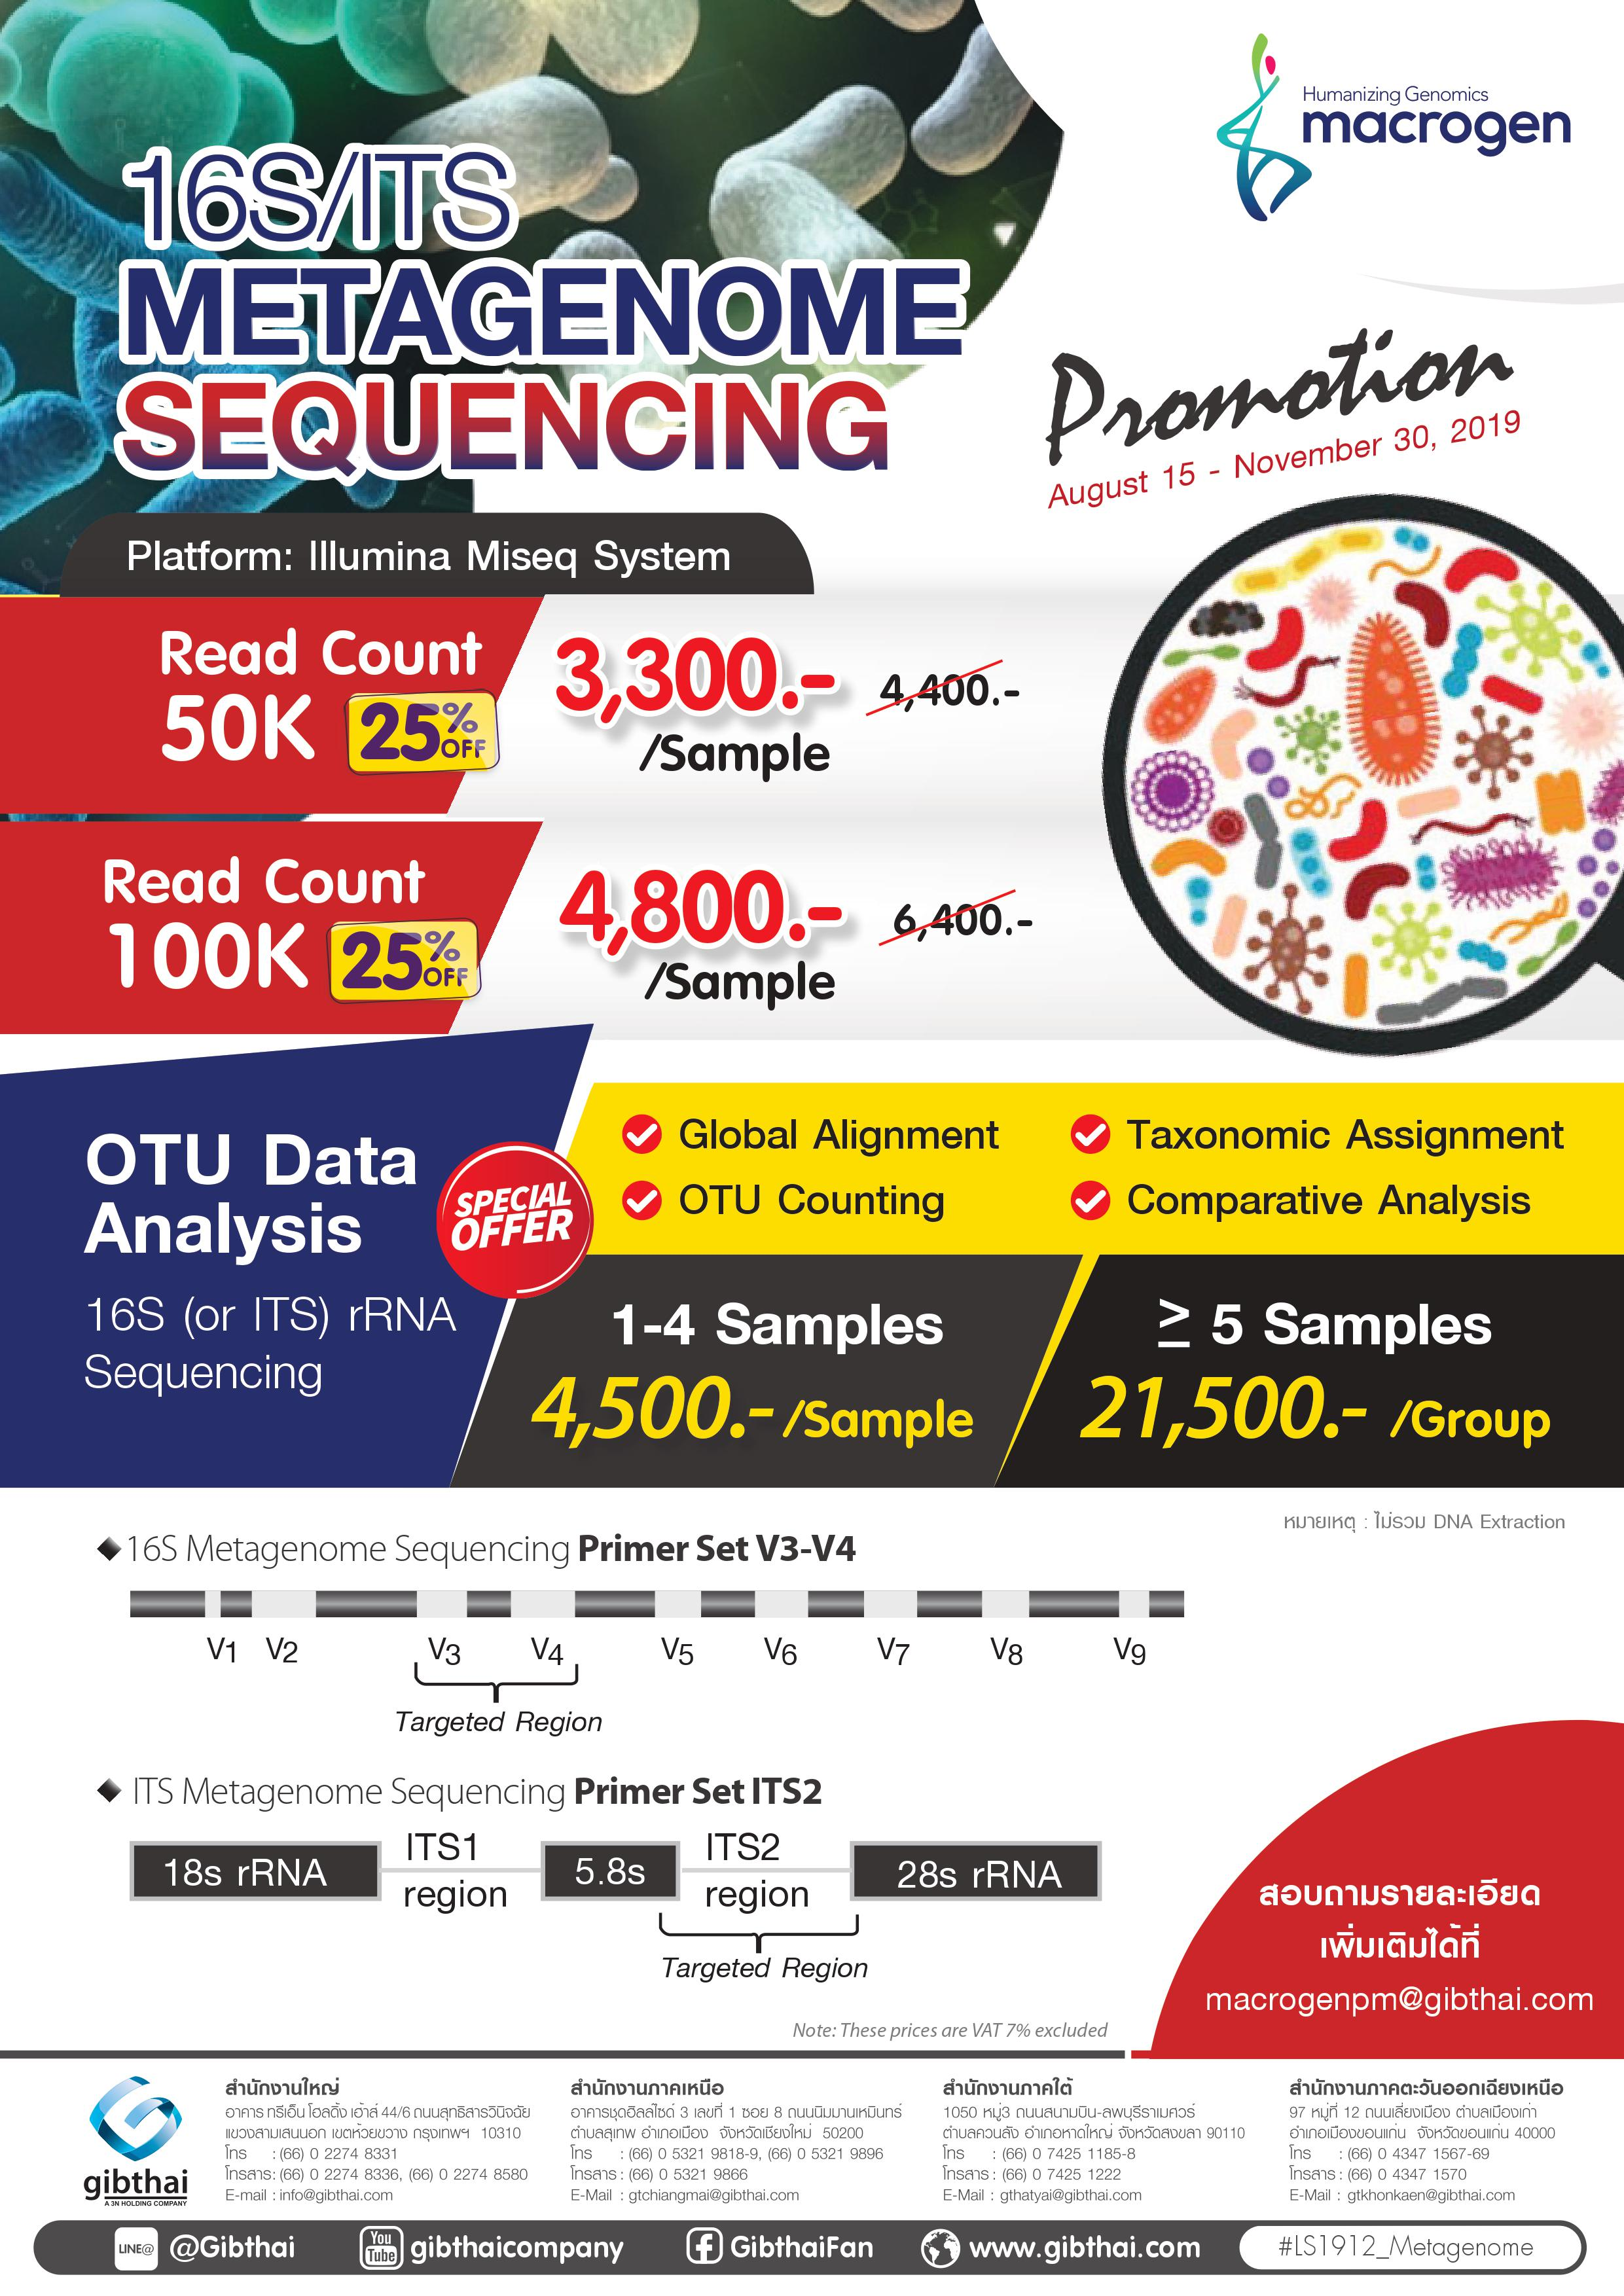 16S/ITS METAGENOME SEQUENCING Promotion